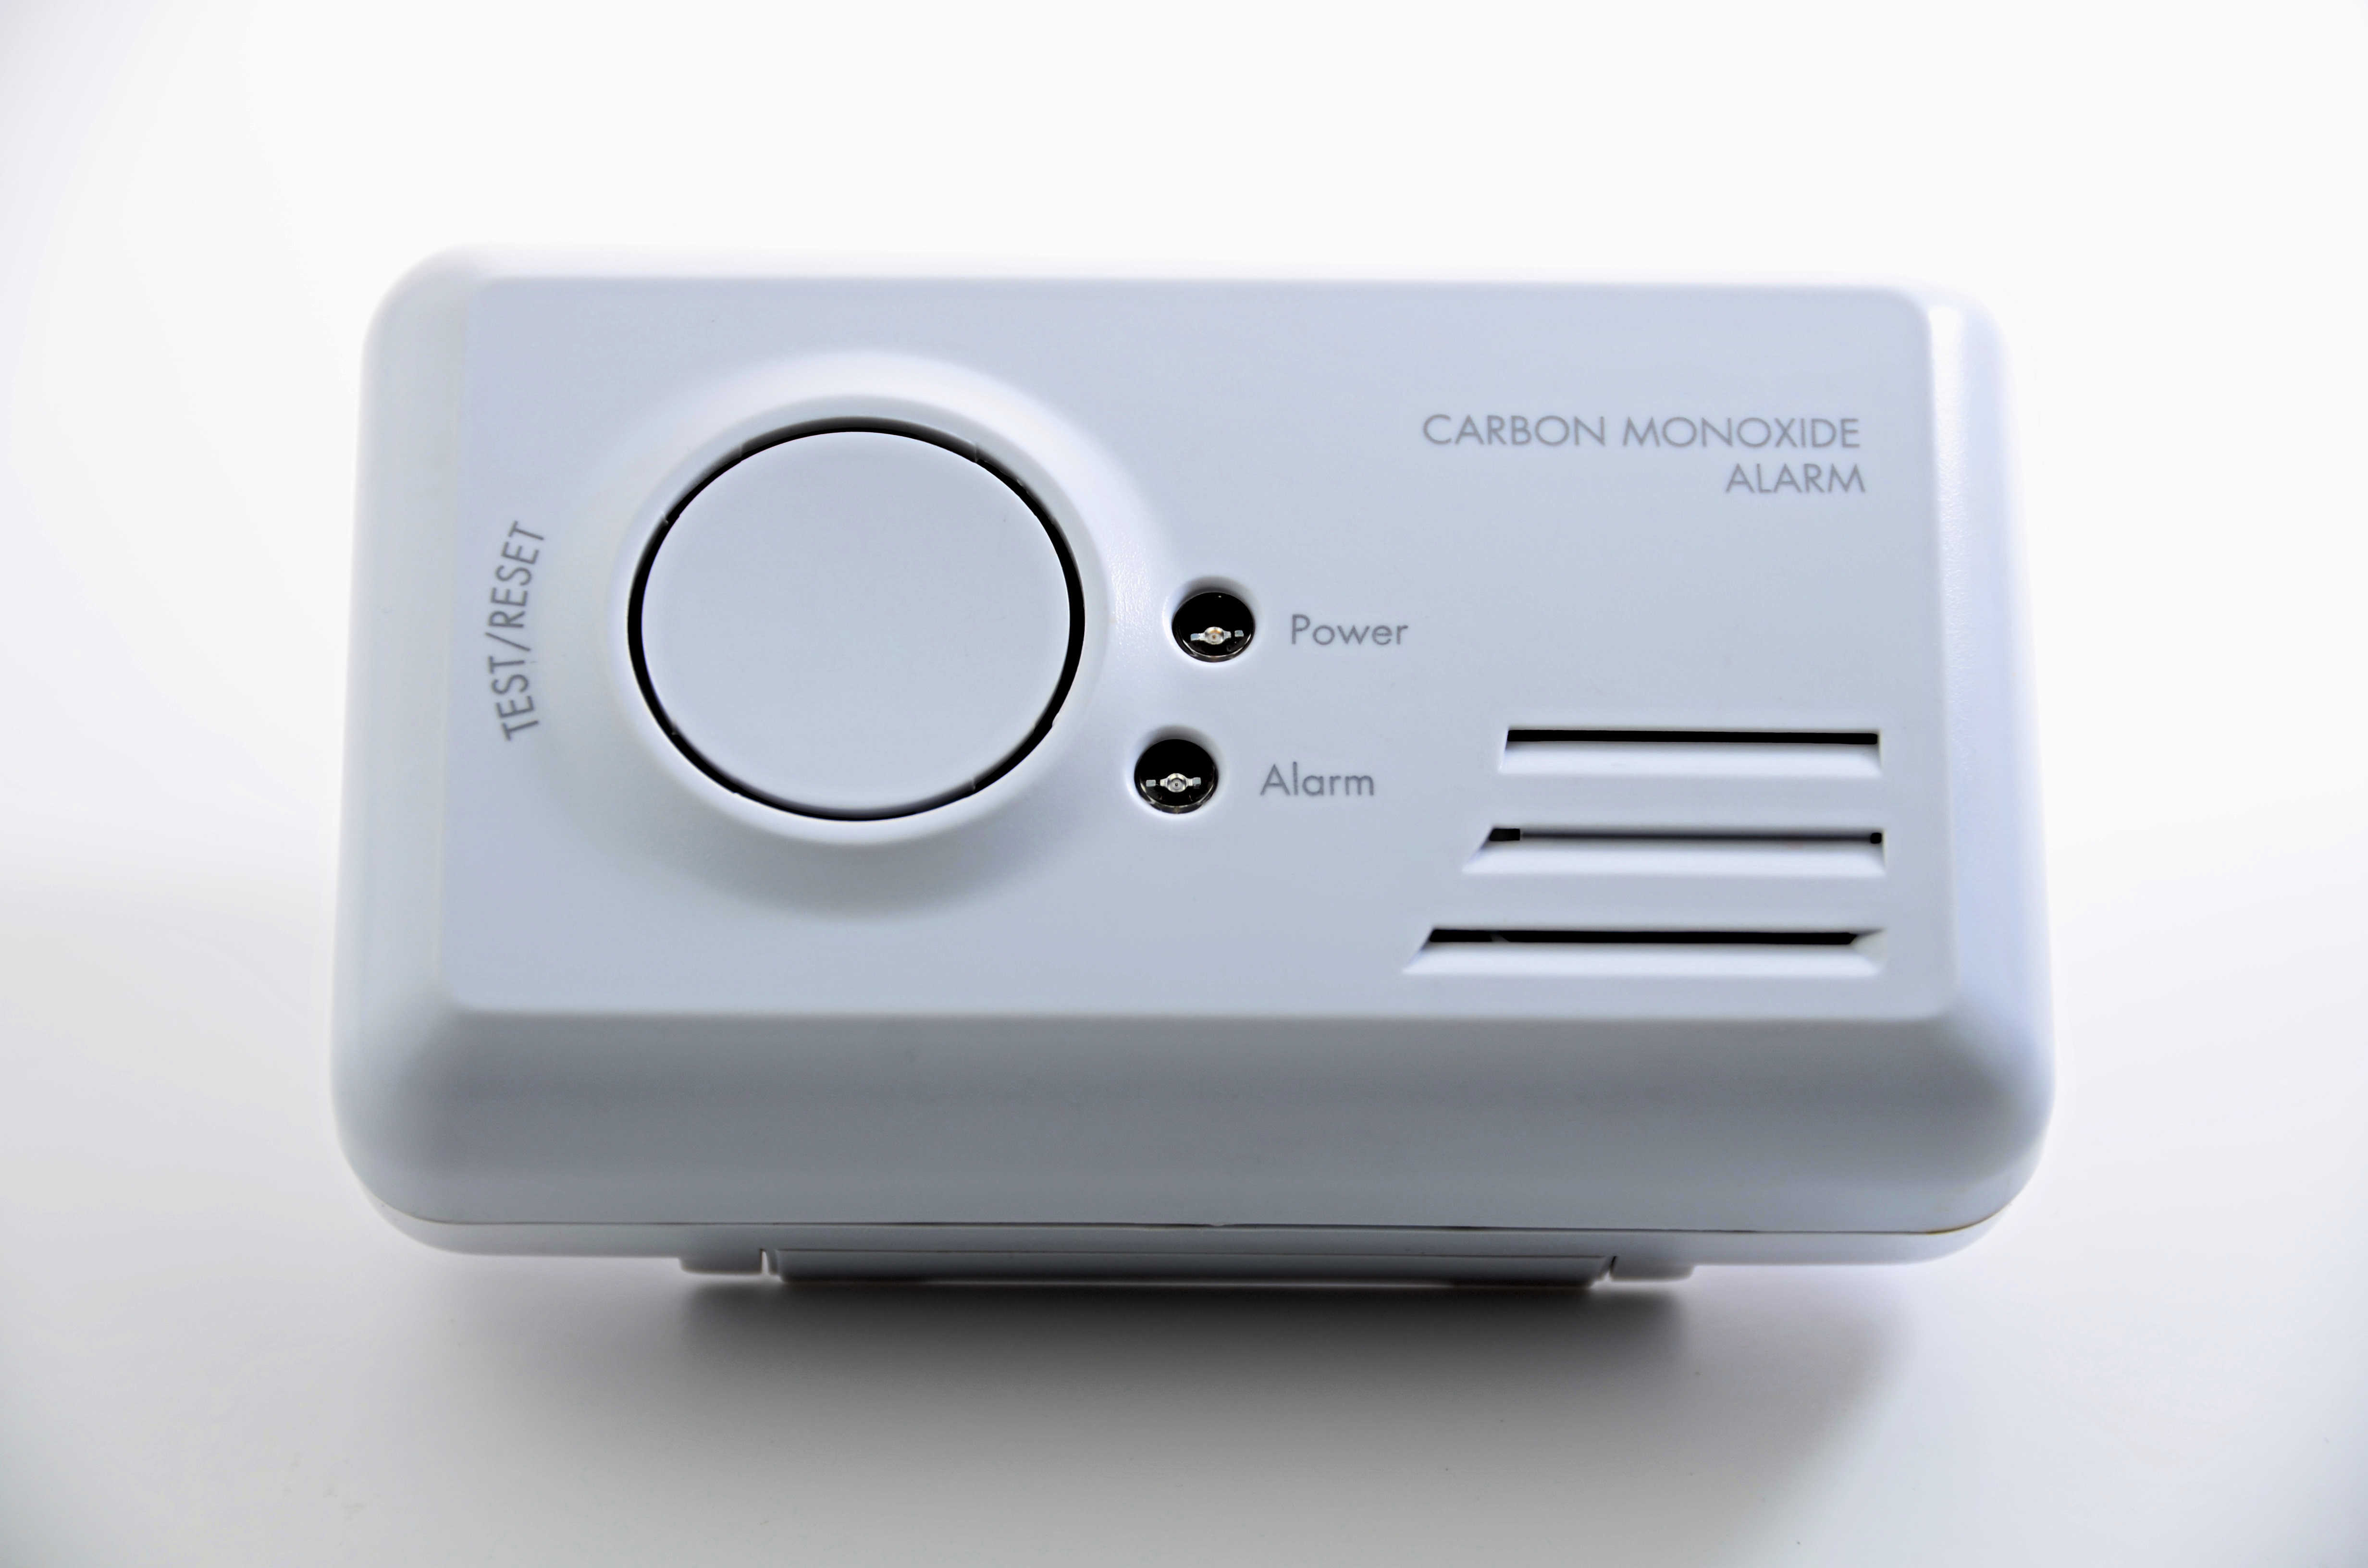 CARBON MONOXIDE AWARENESS: WHAT SHOULD I KNOW?